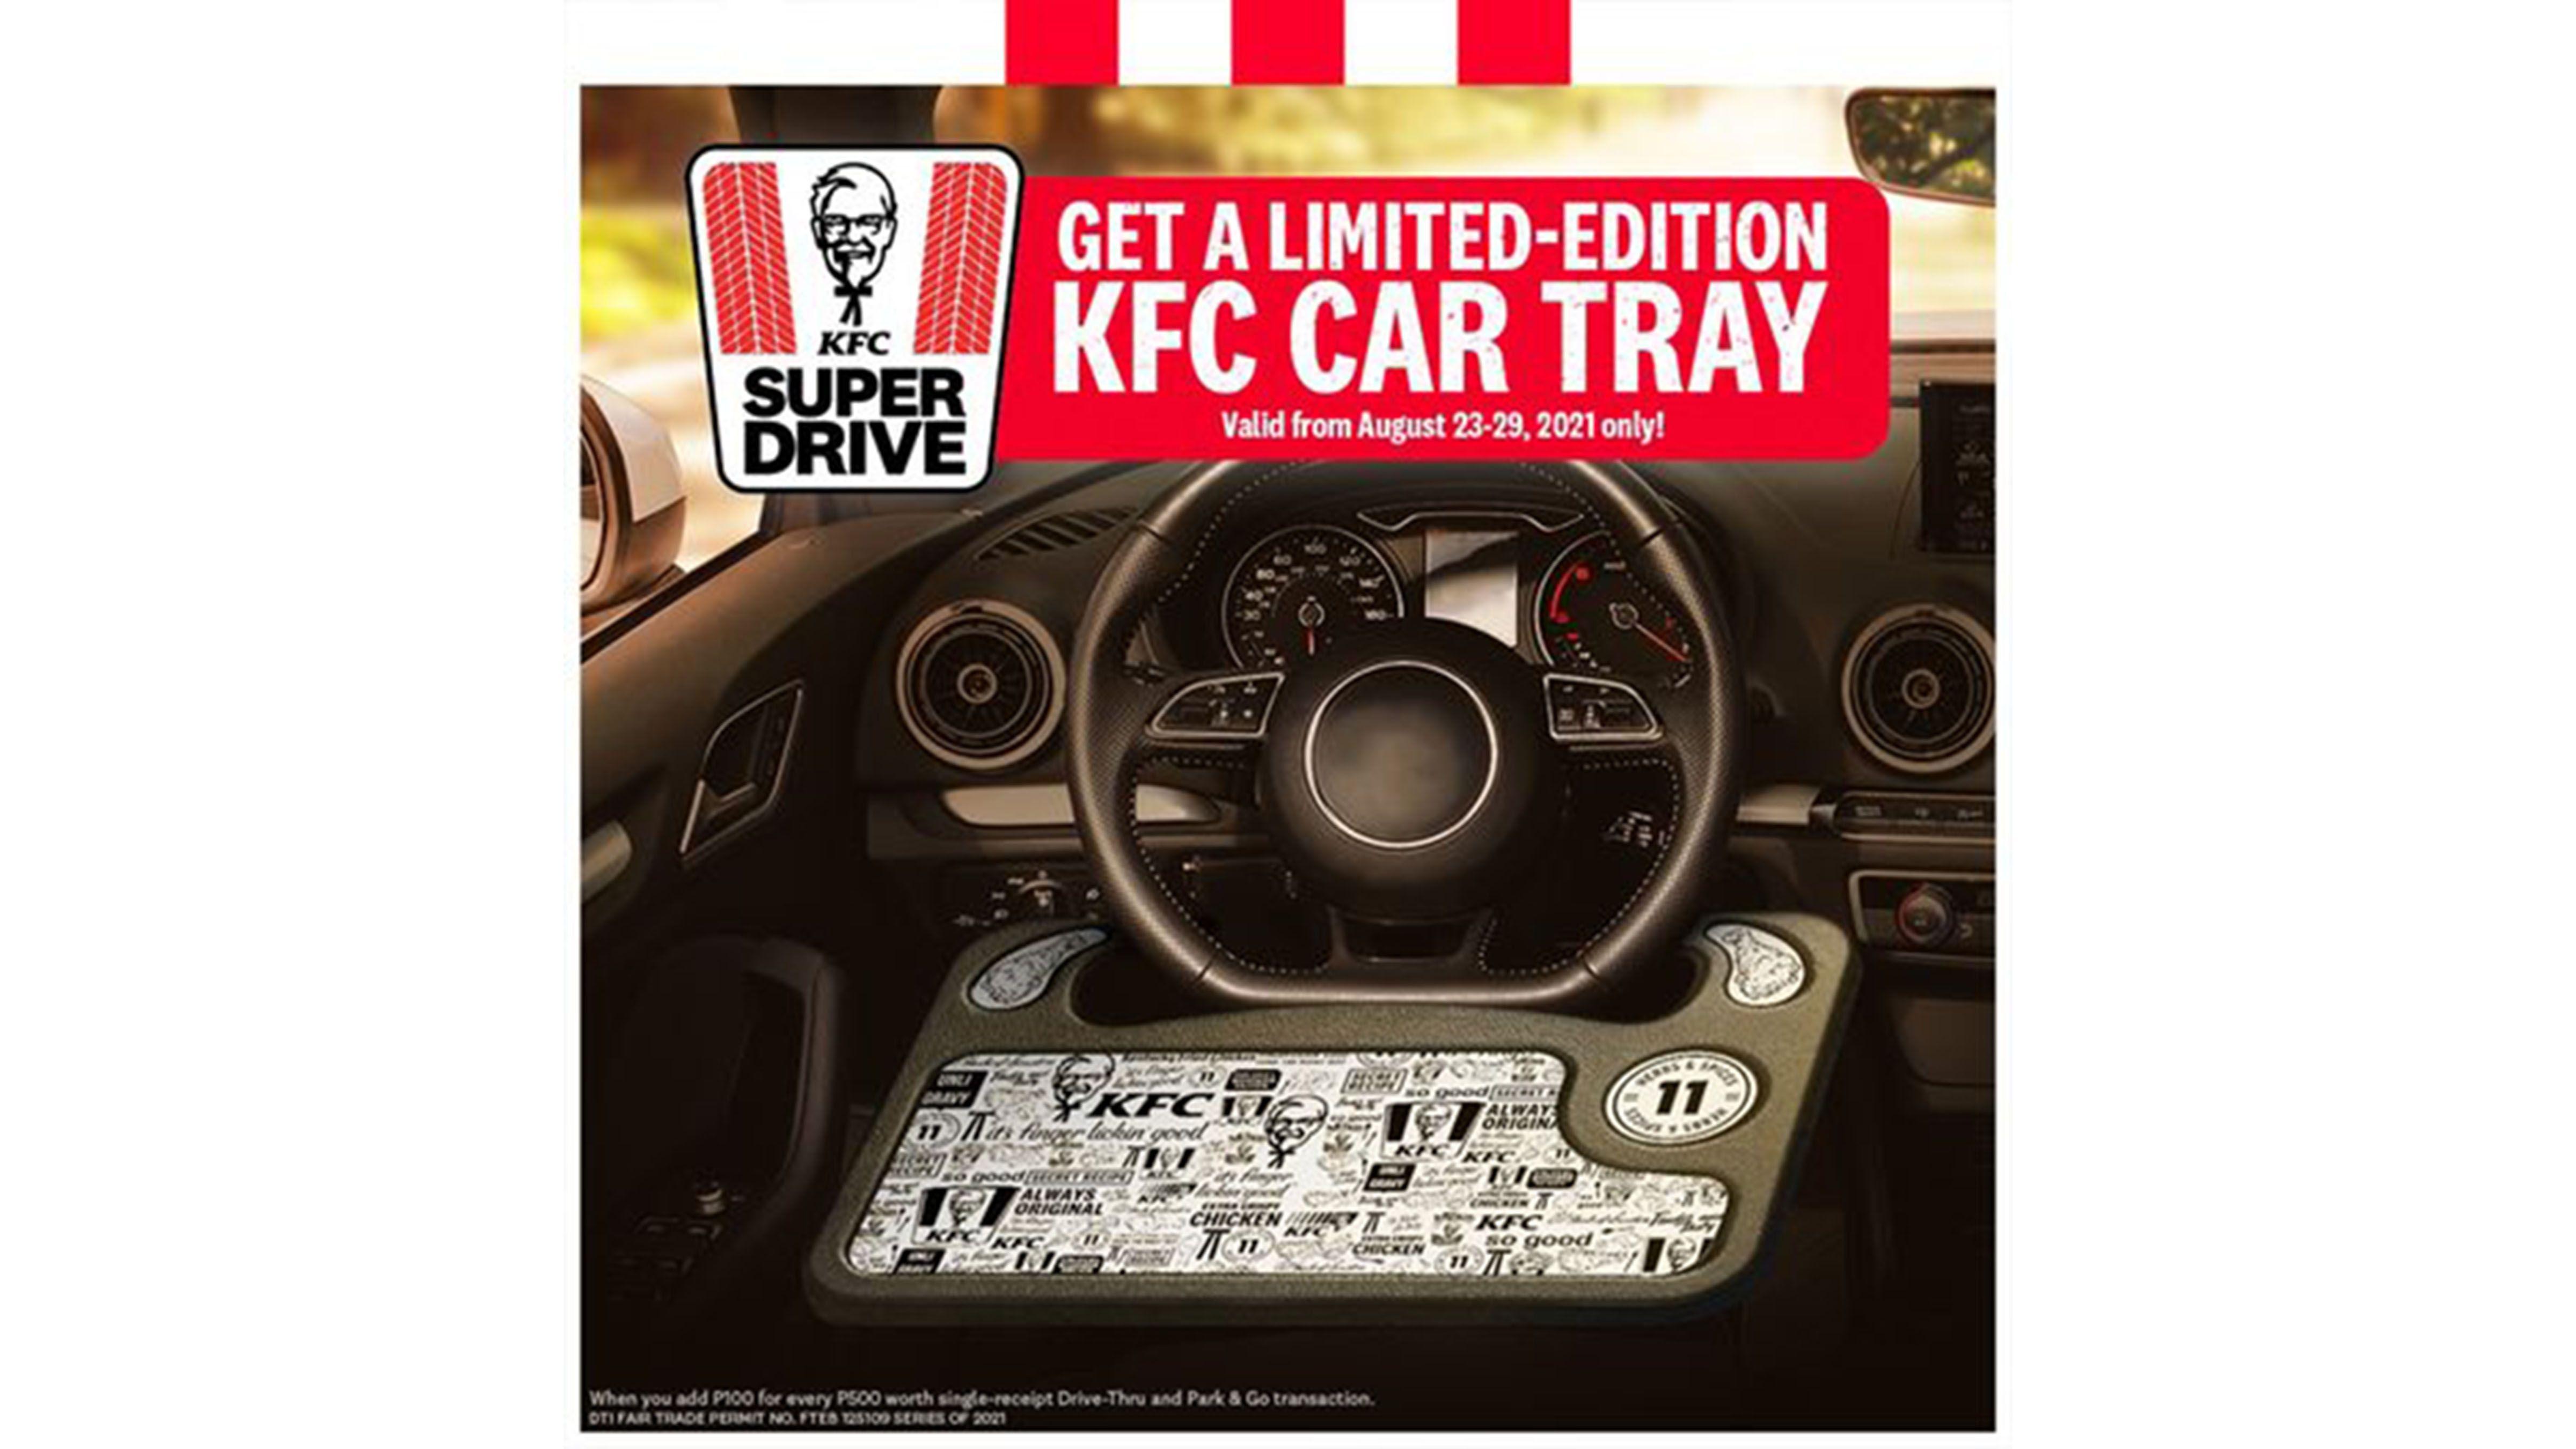 Last chance to grab car tray from KFC photo from KFC